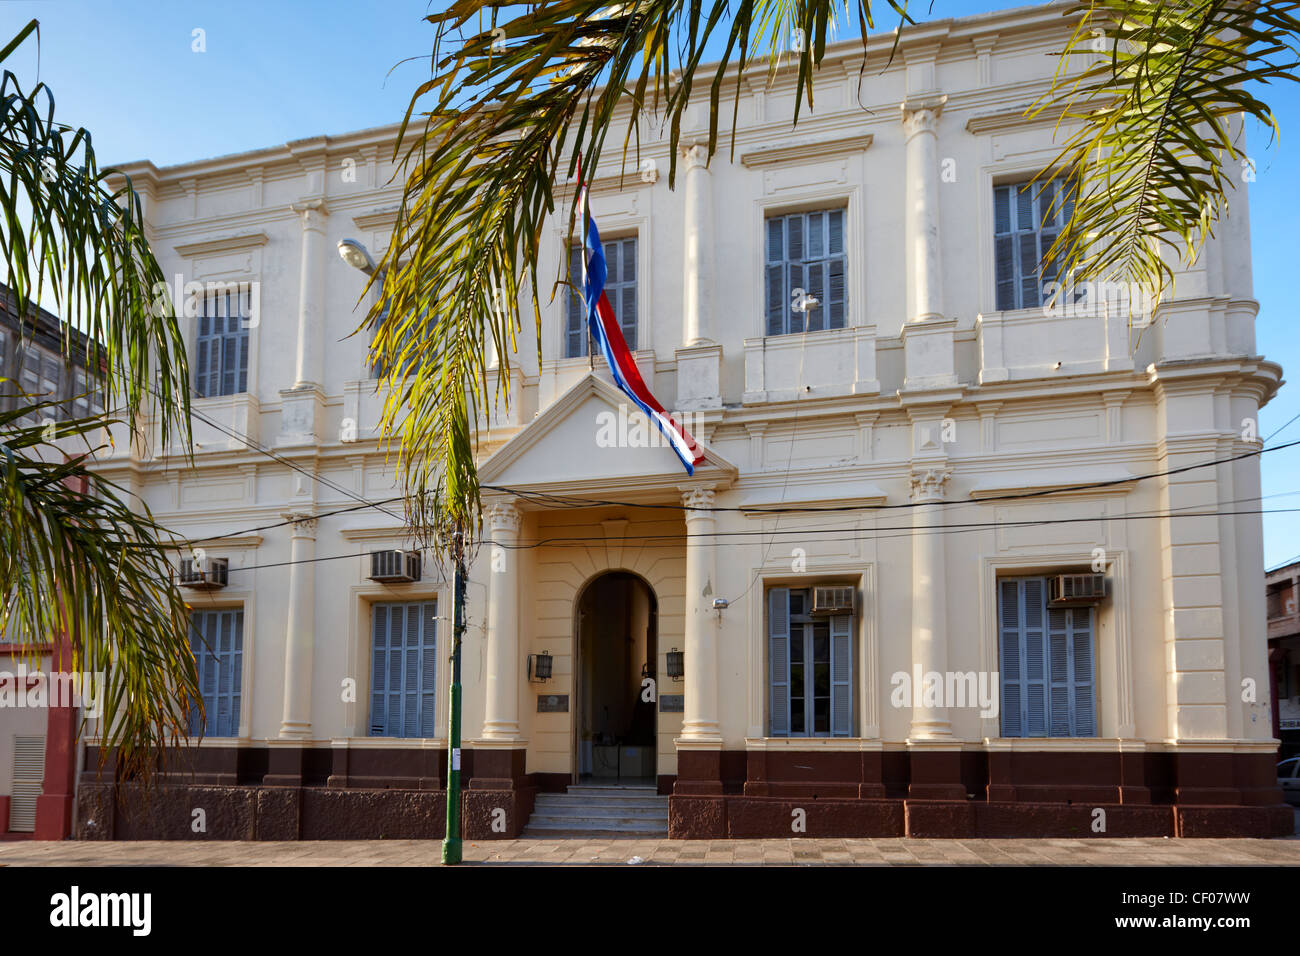 National Museum of Fine Arts (Museo Nacional de Bellas Artes), Asuncion, Paraguay - Stock Image